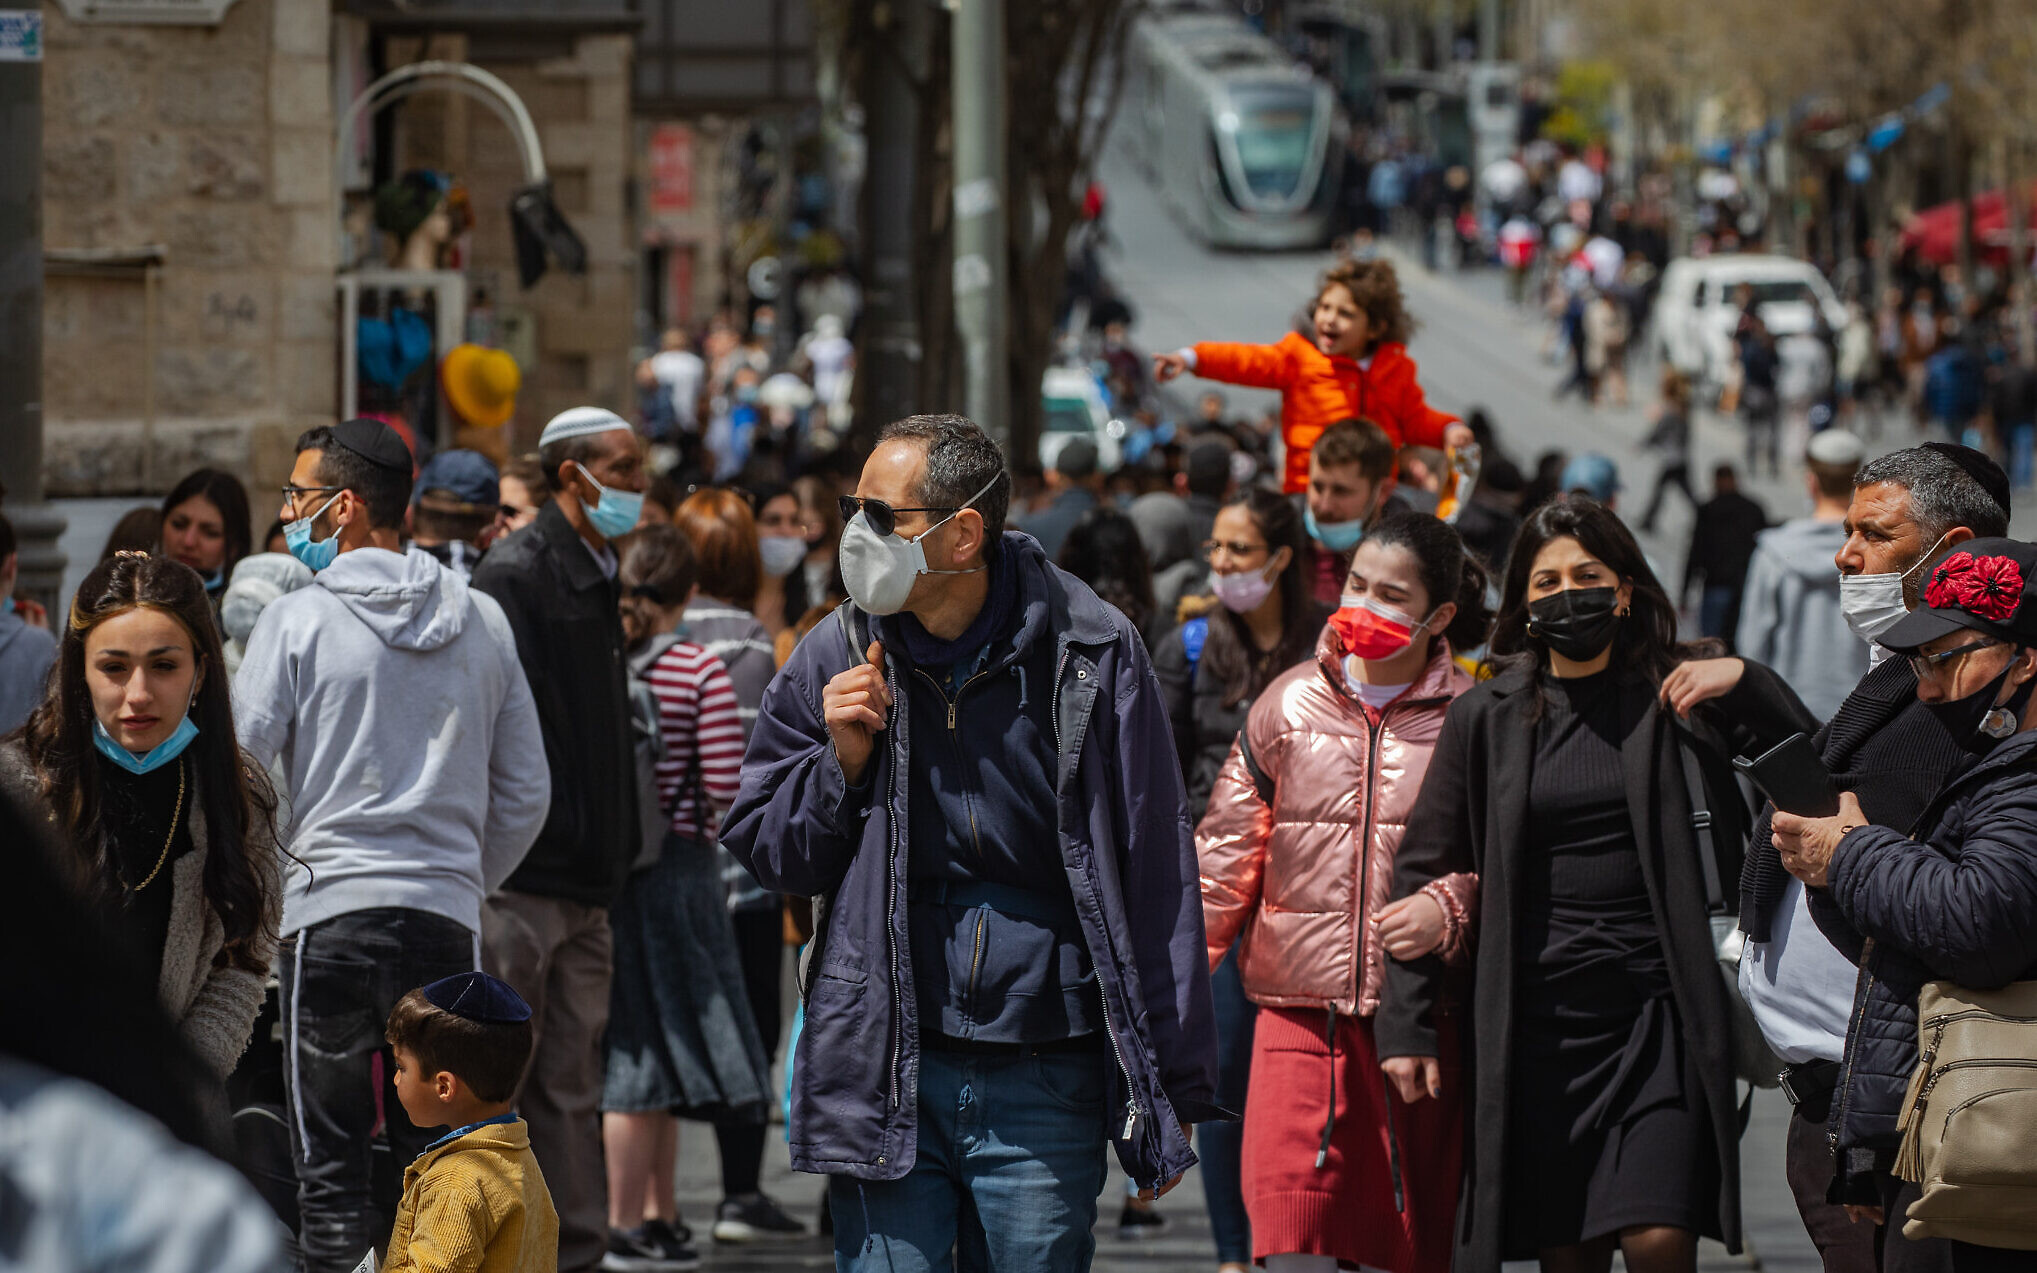 Israel Successfully Lifts Outdoor Mask Mandate